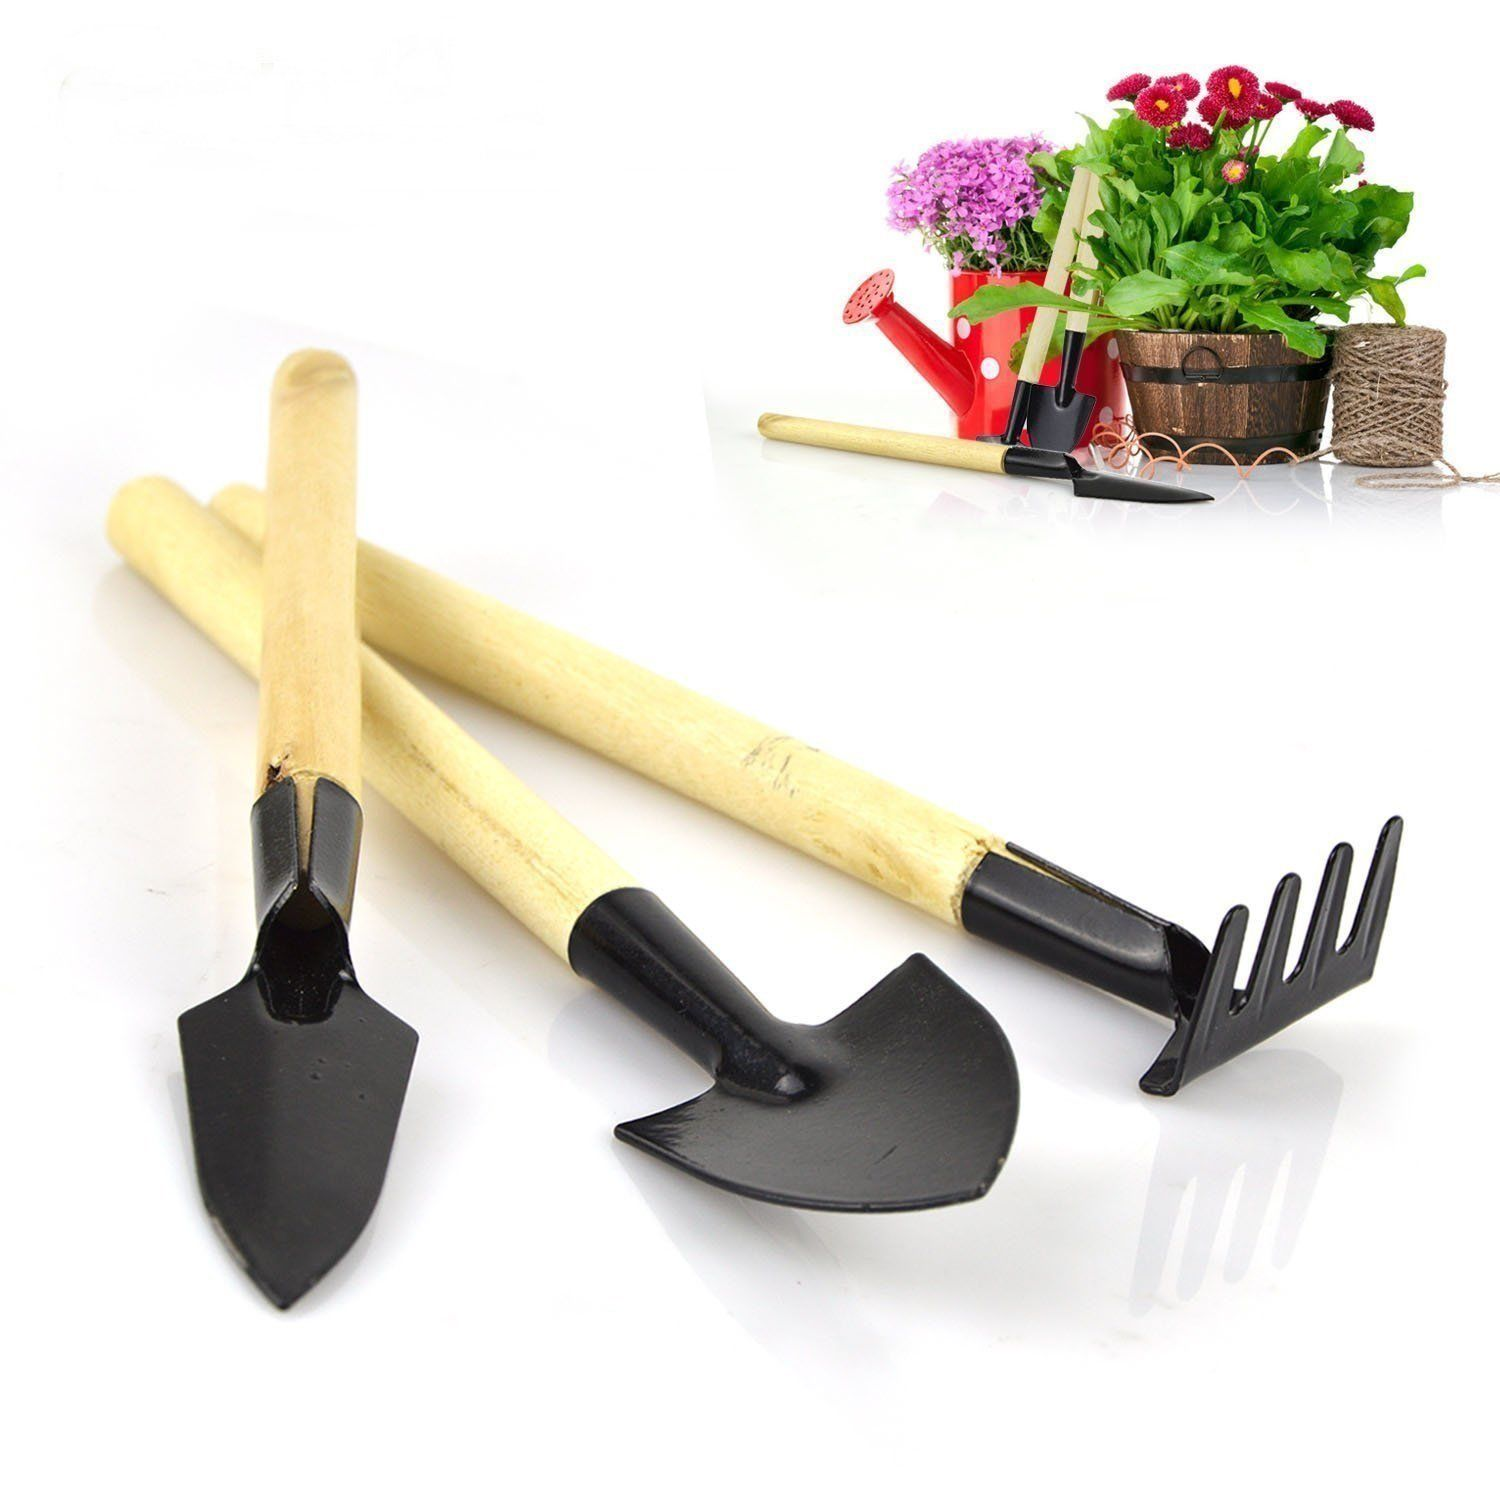 Aries 3 Pcs Mini Gardening Hand Tools Sets Spade Shovel for Flower ...